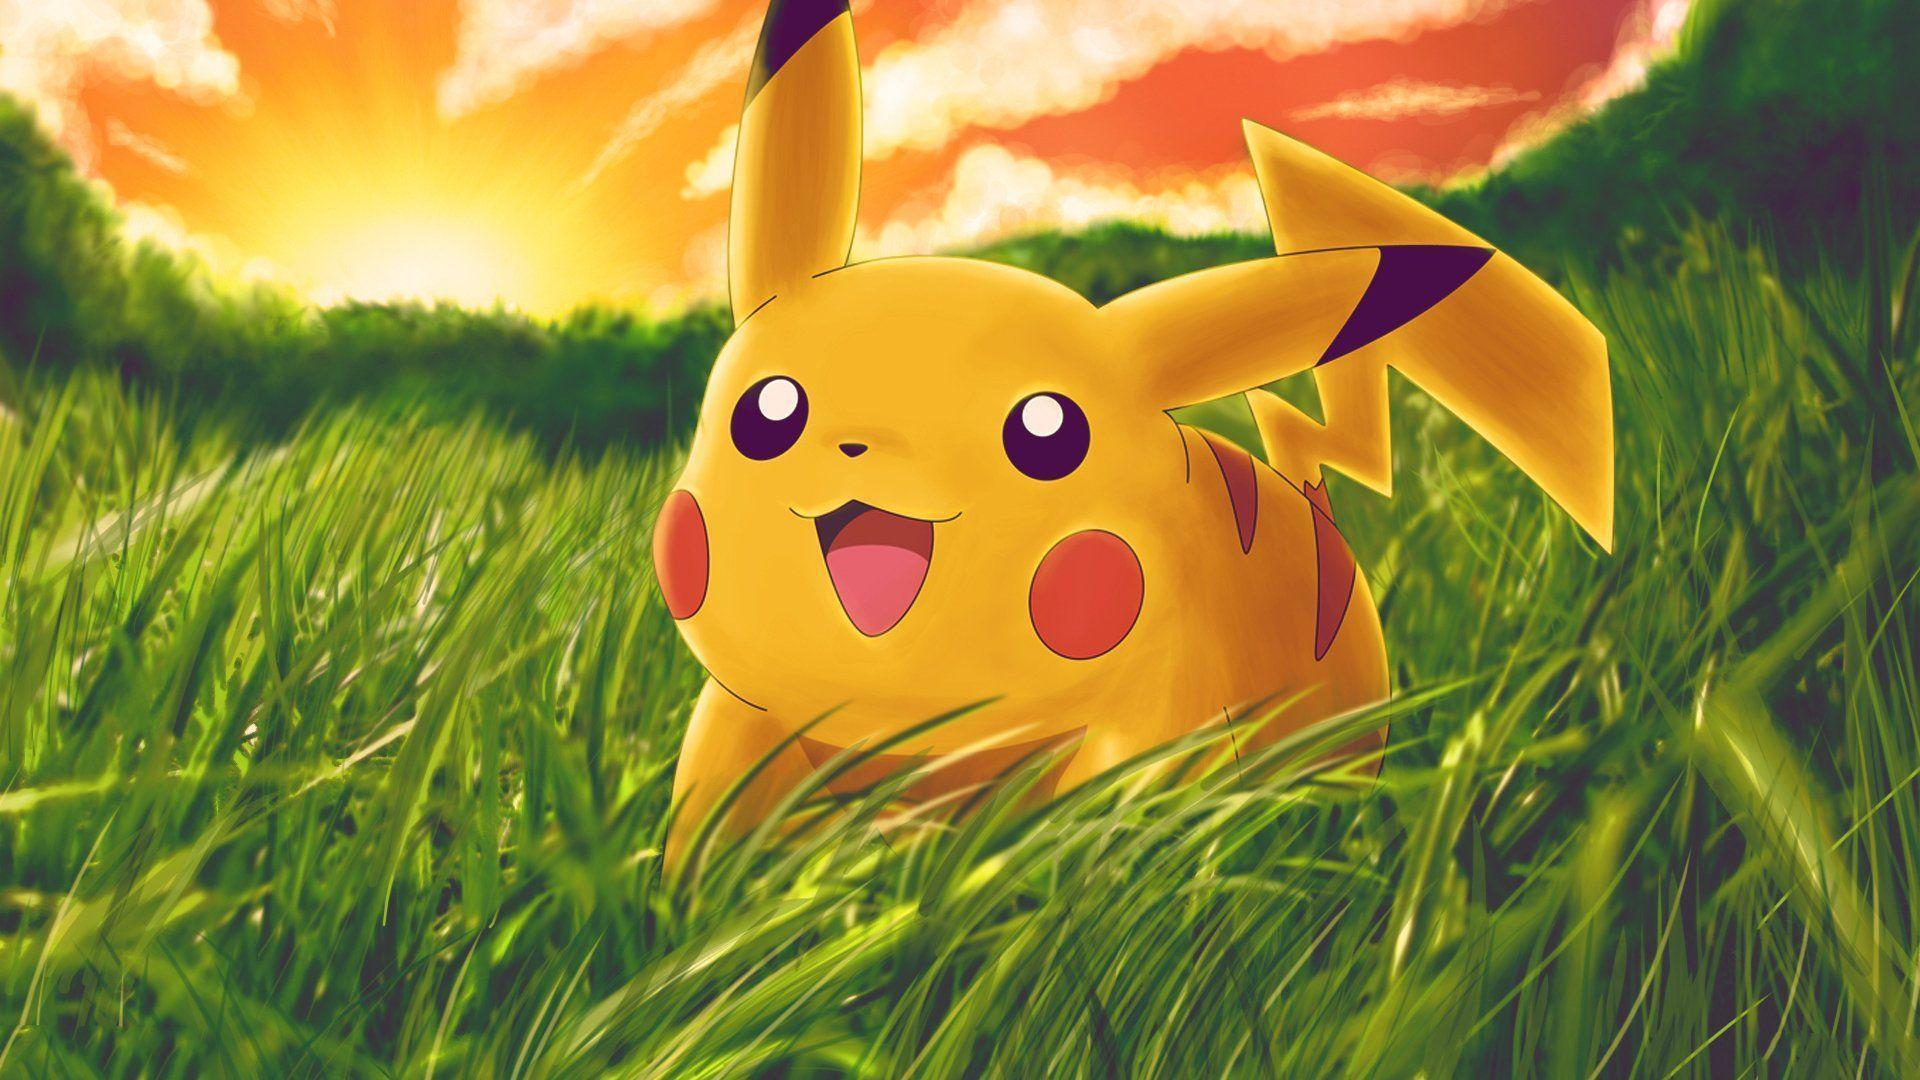 Pikachu Pokemon Wallpaper – Download It For Your Personal Computer